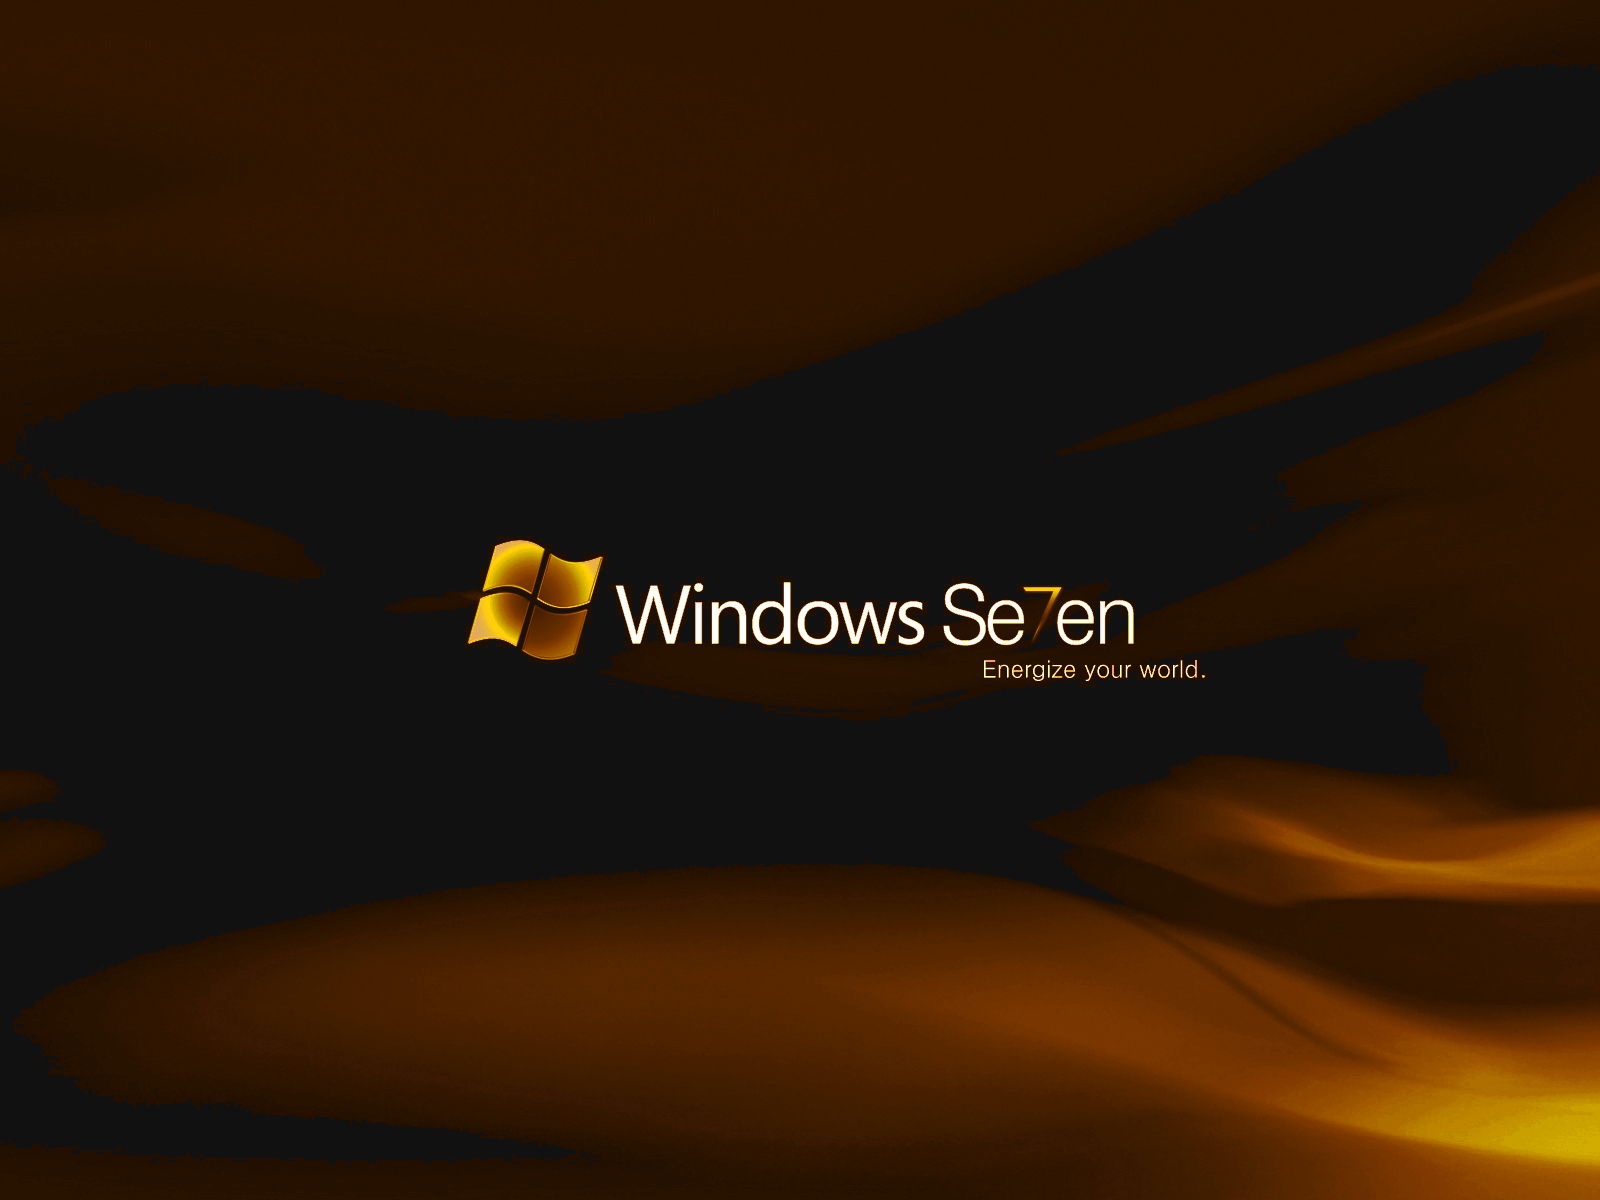 3dnamewallpapers: window 7 hd wallpaper free download for desktop